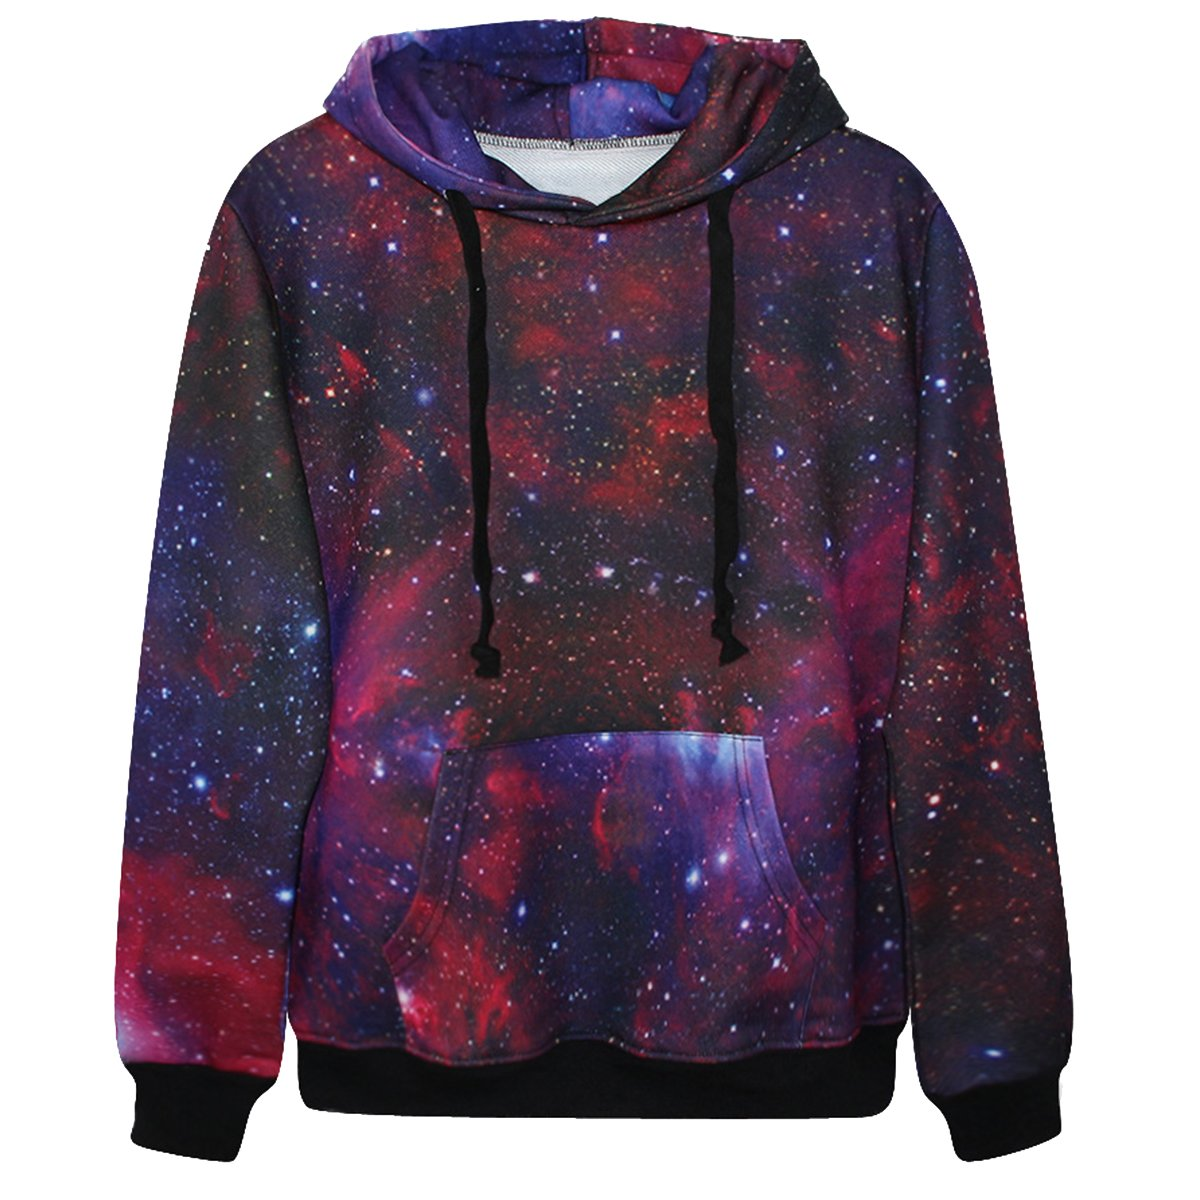 Niyatree Galaxy Stars Hoodie Sweater Long Sleeve Pullover Sweatshirt For Lovers